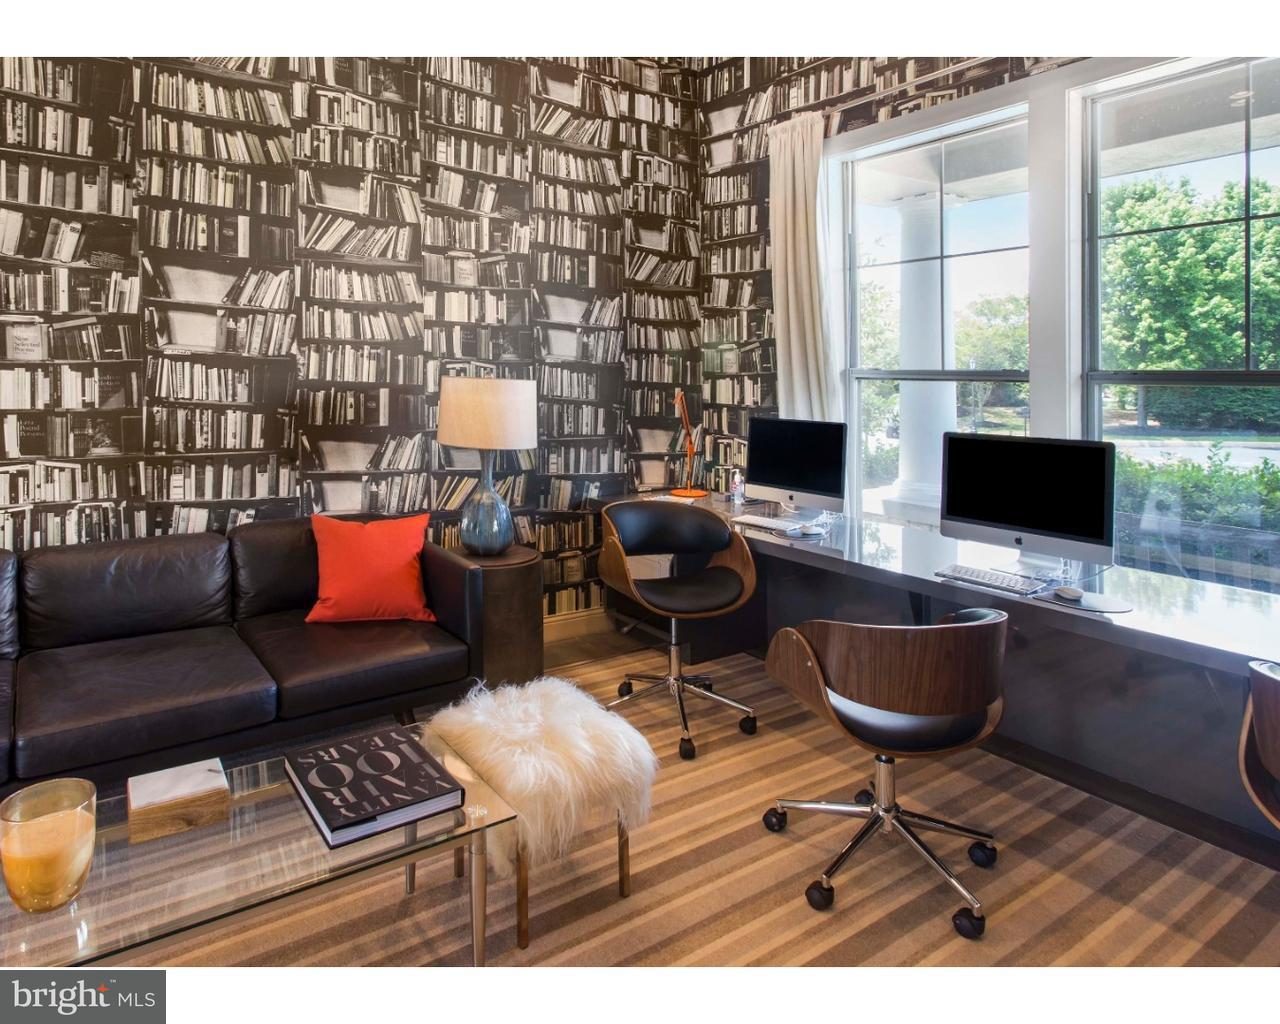 1000 SKILES BLVD #1204, WEST CHESTER - Listed at $1,529, WEST CHESTER